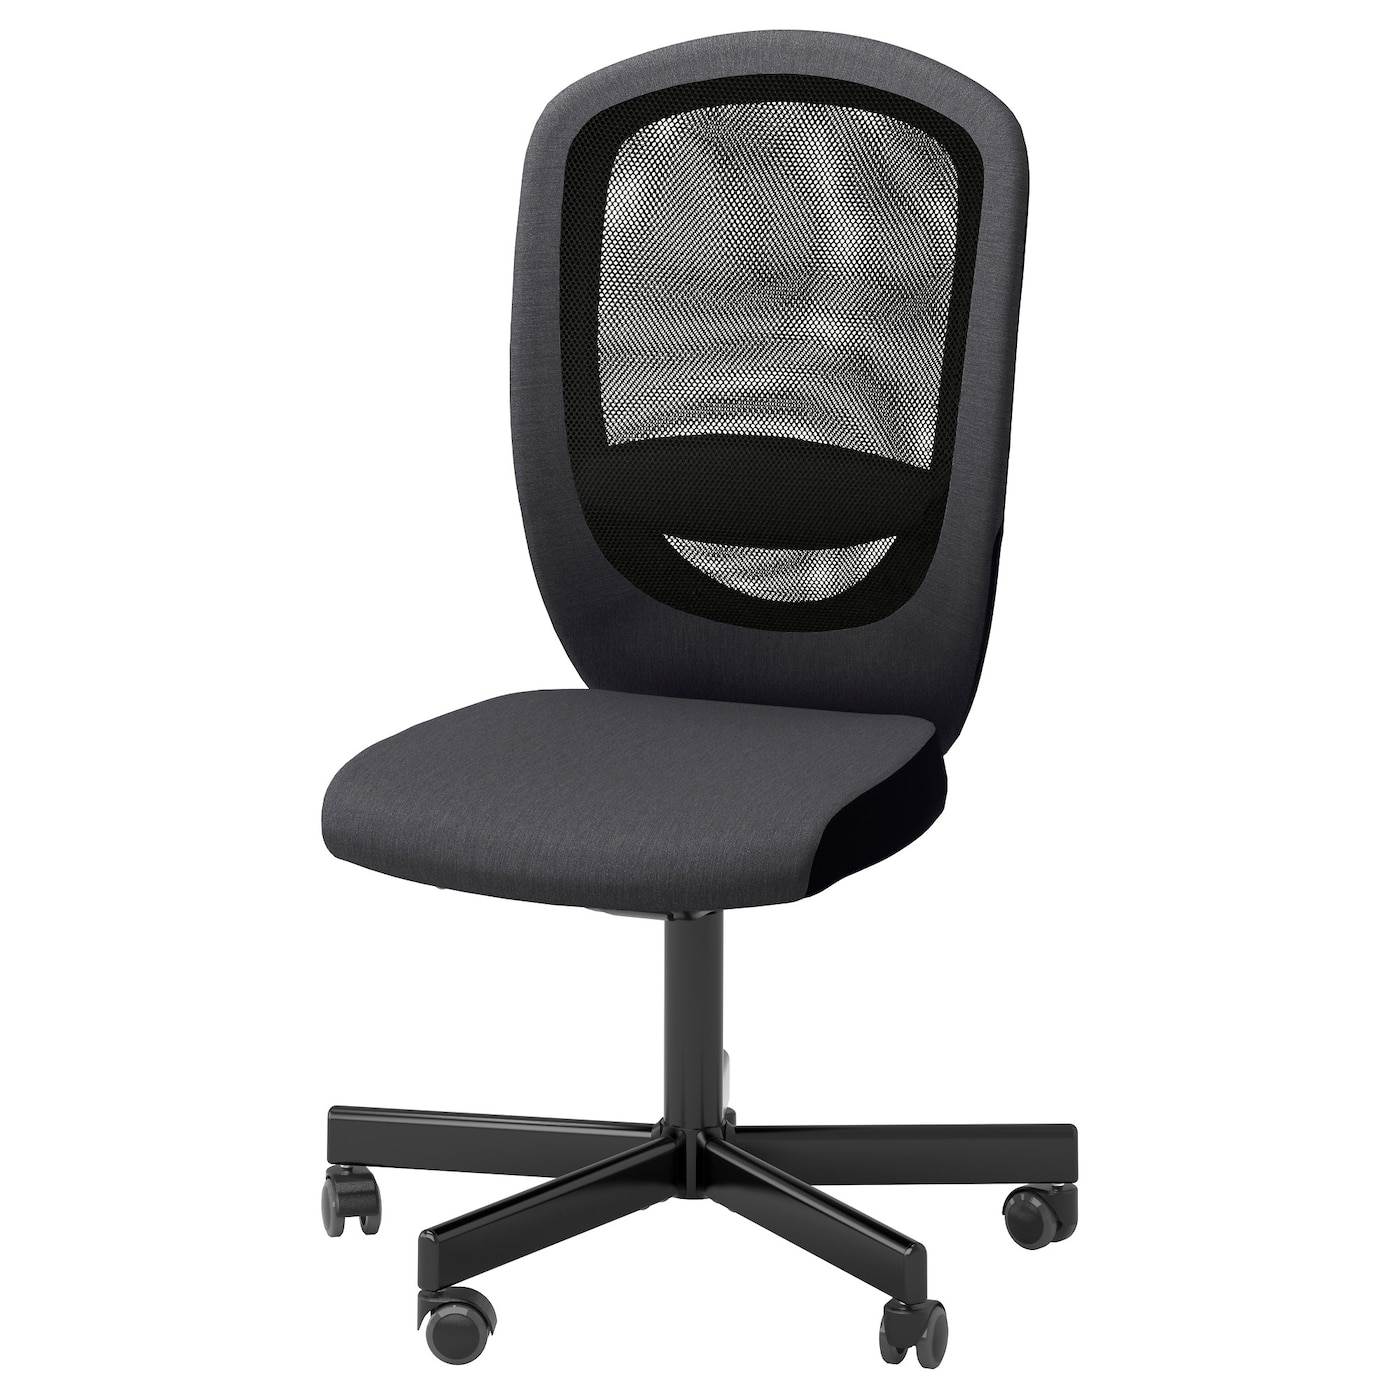 IKEA FLINTAN swivel chair 10 year guarantee. Read about the terms in the guarantee brochure.